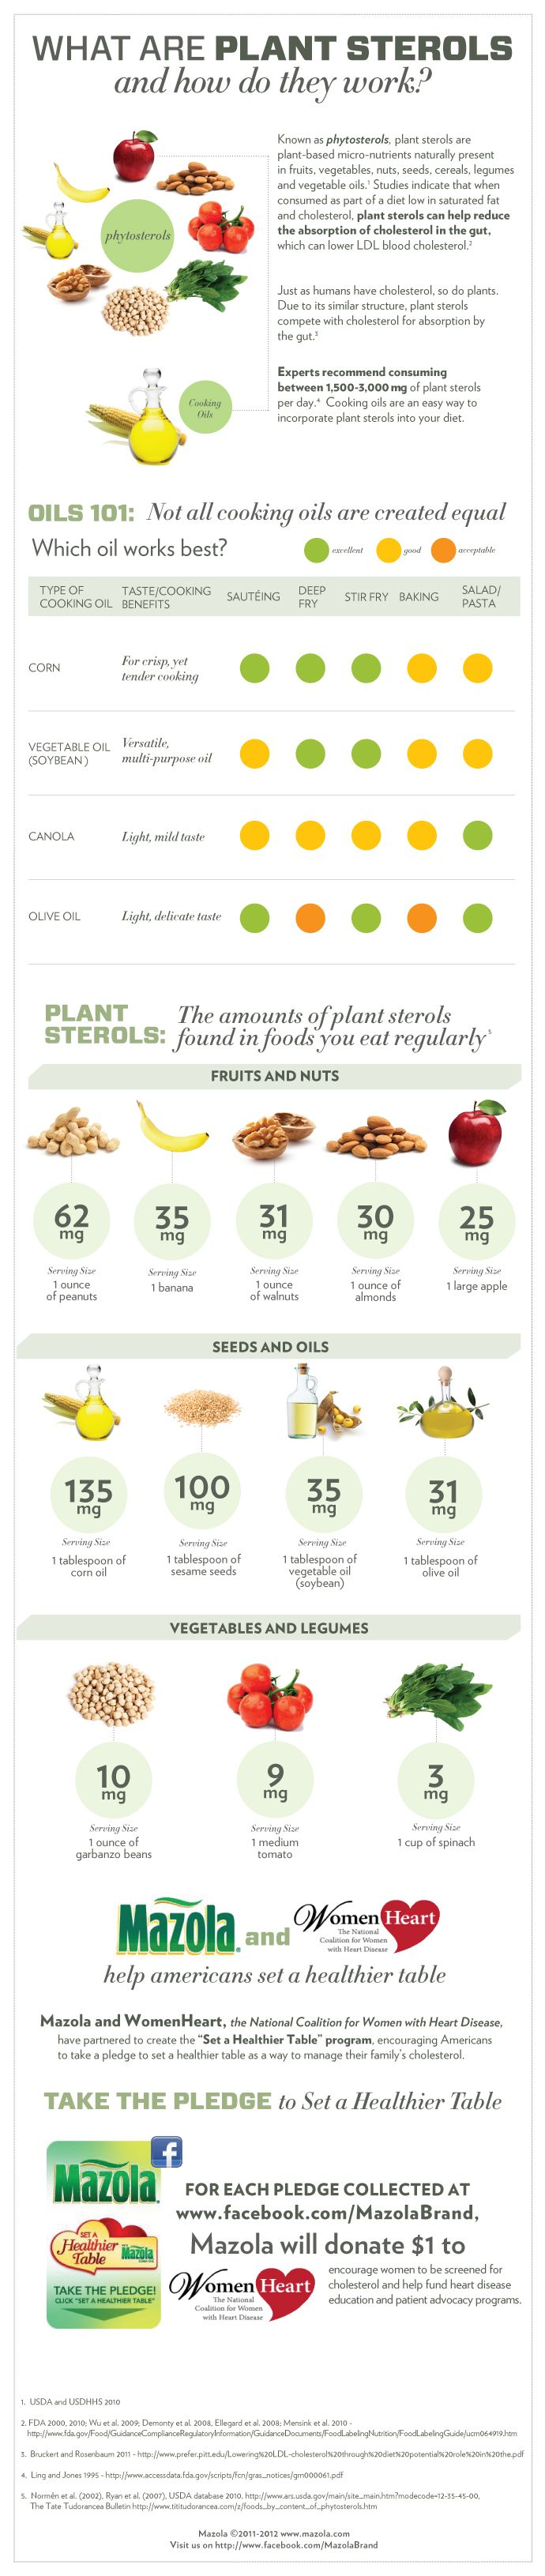 What are plant sterols and how do they work?